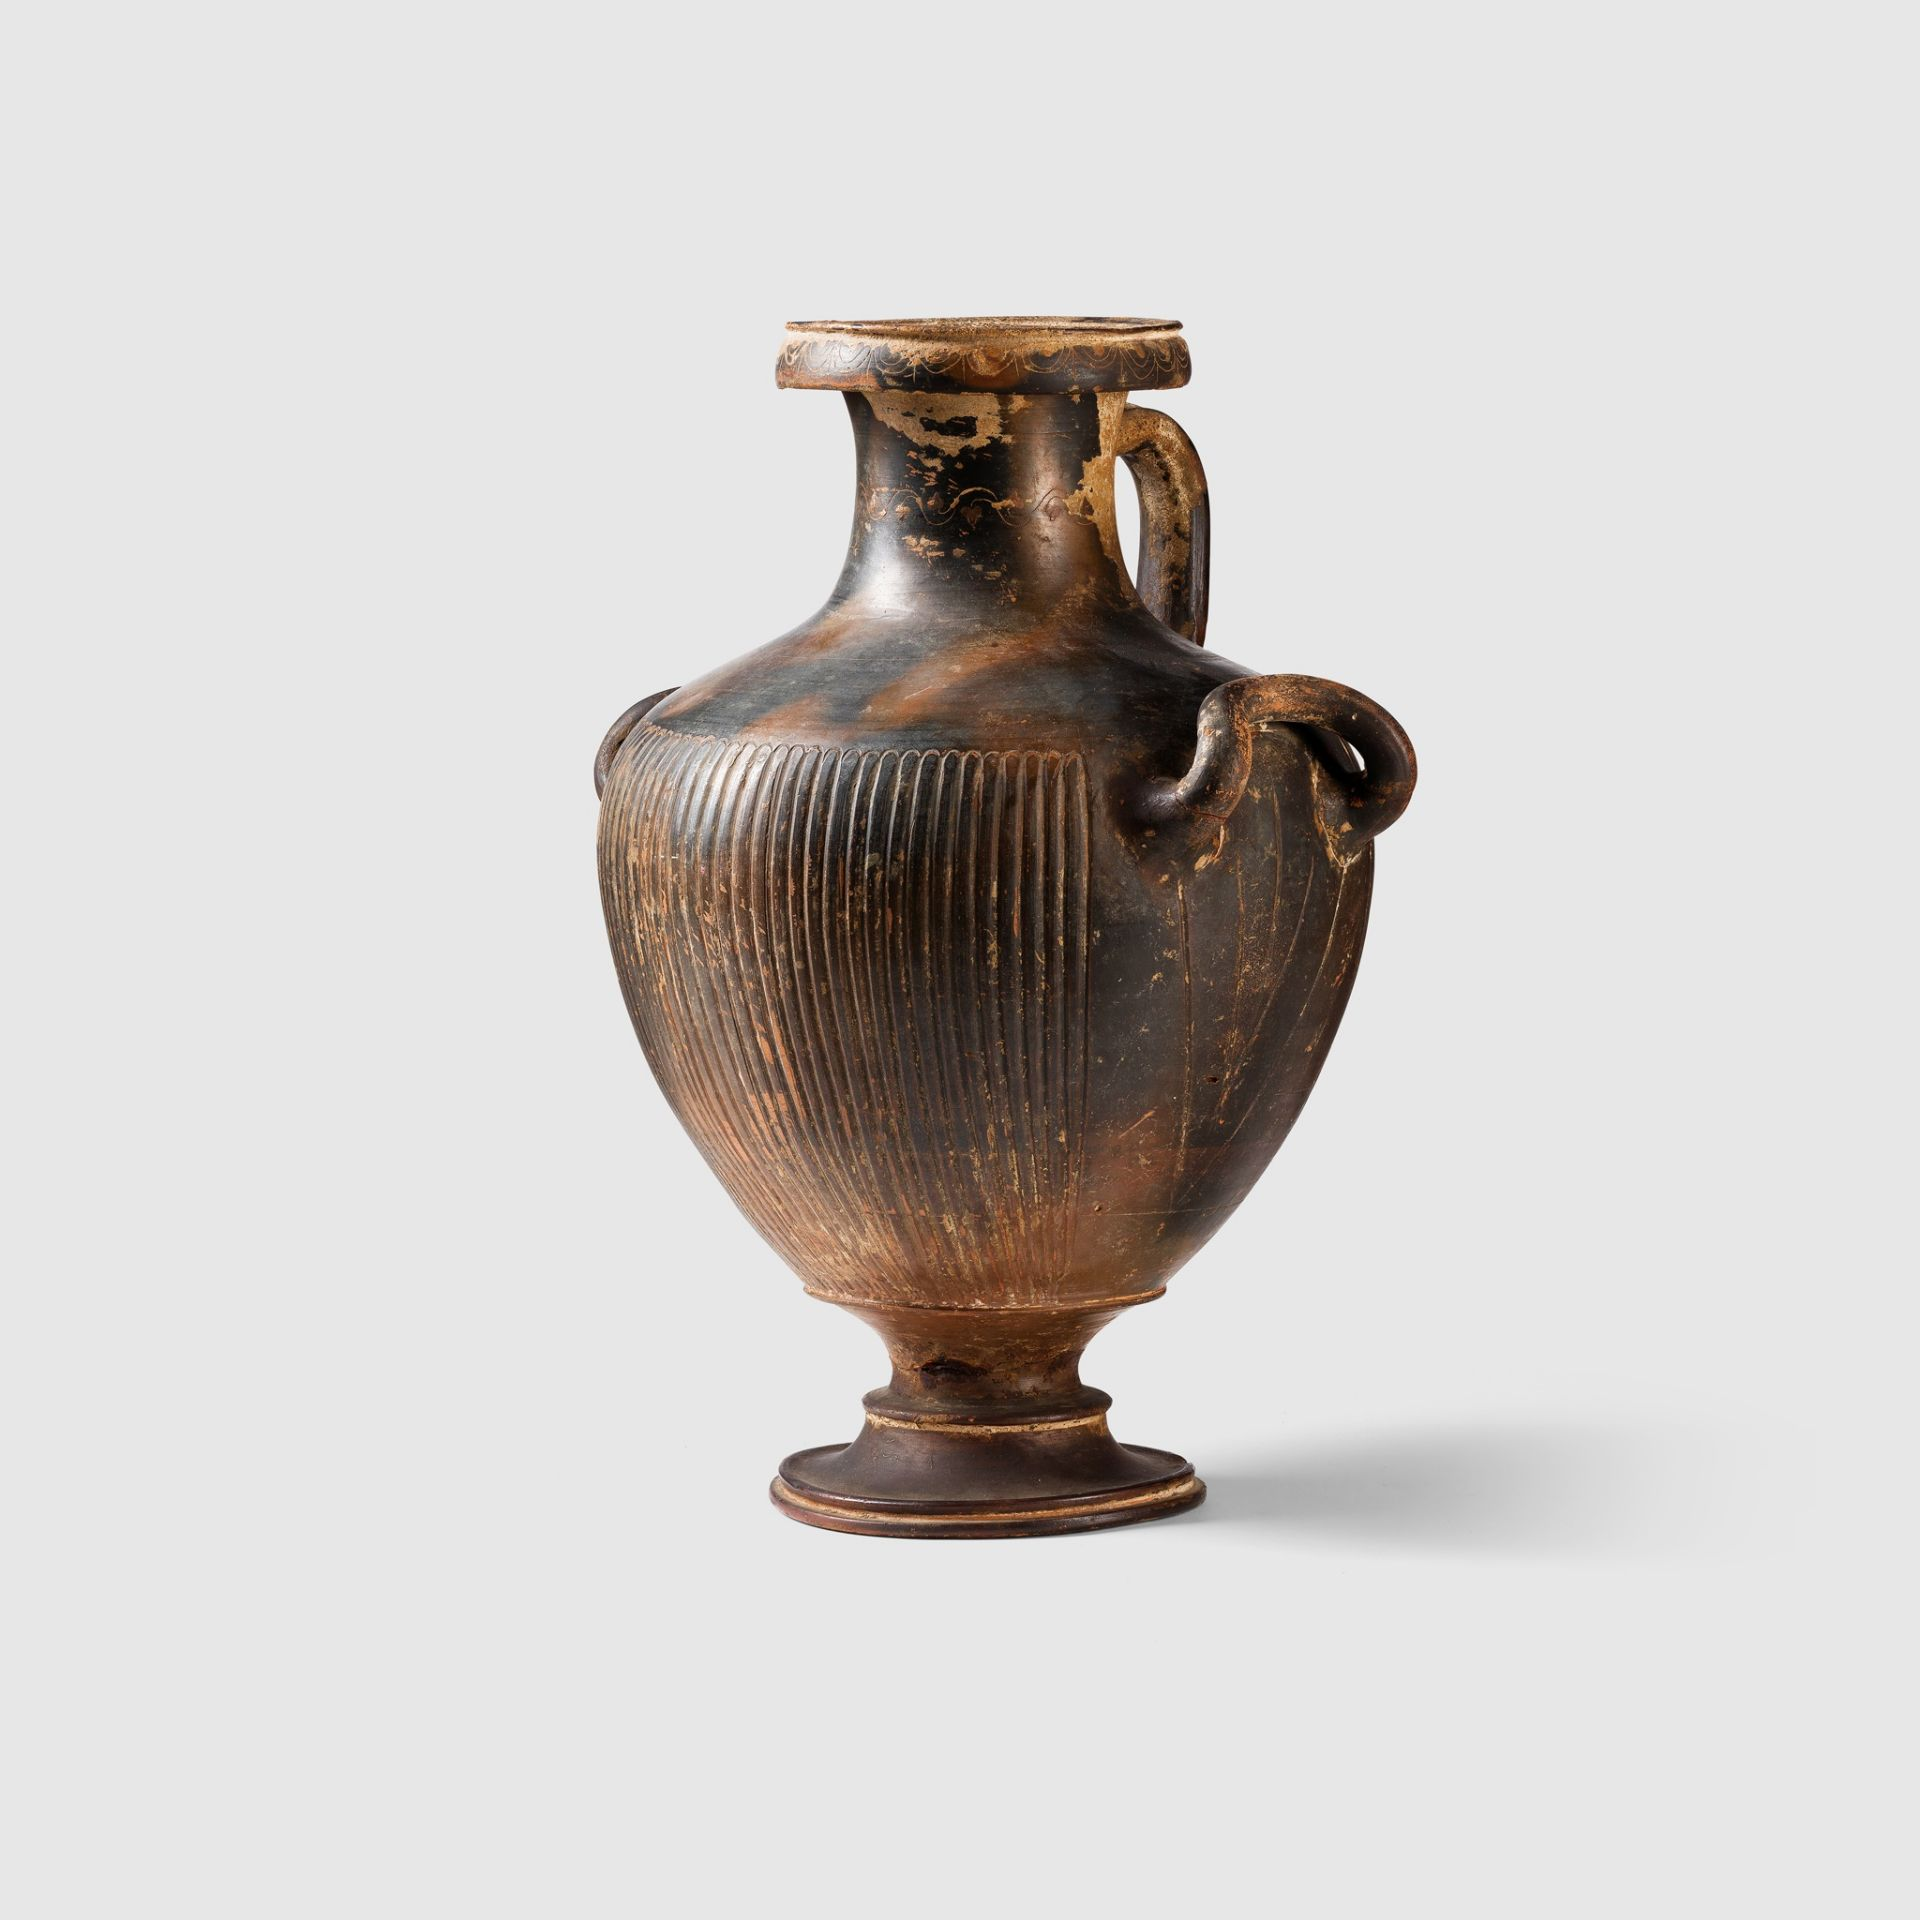 GNATHIAN WARE HYDRIA SOUTHERN ITALY, C. 3RD CENTURY B.C. - Image 2 of 4